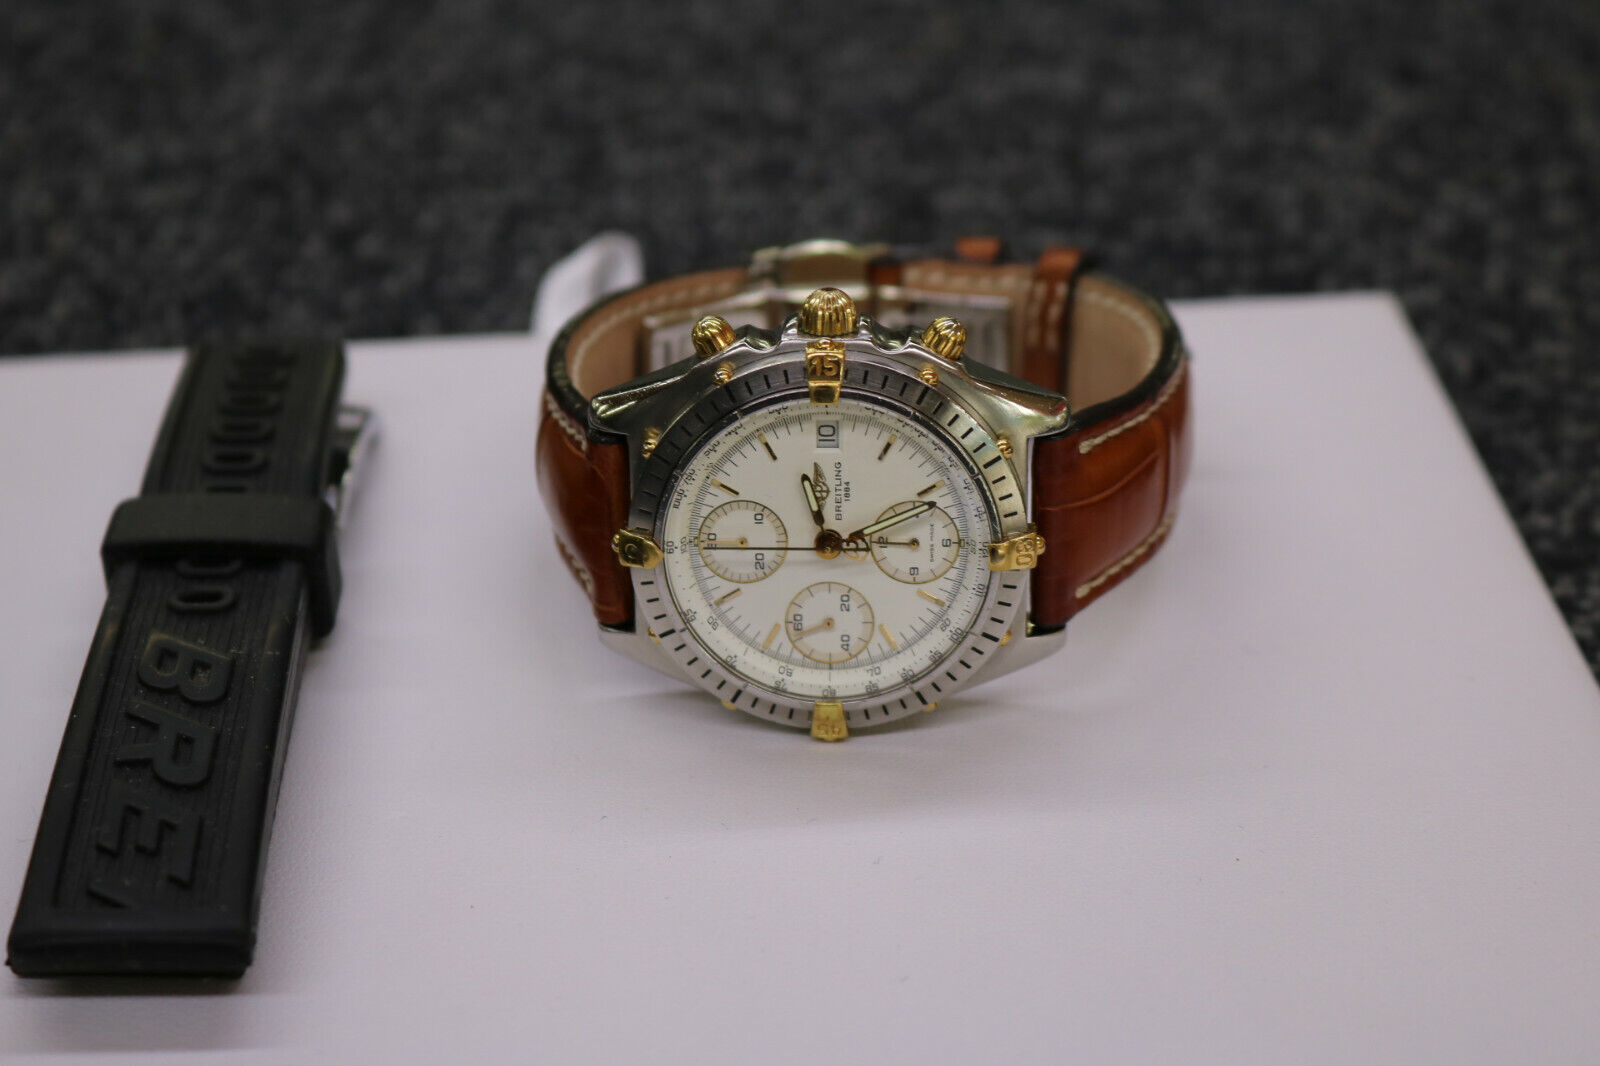 BREITLING Chronomat B13048 Date Chronograph White Dial Automatic Men's Watch